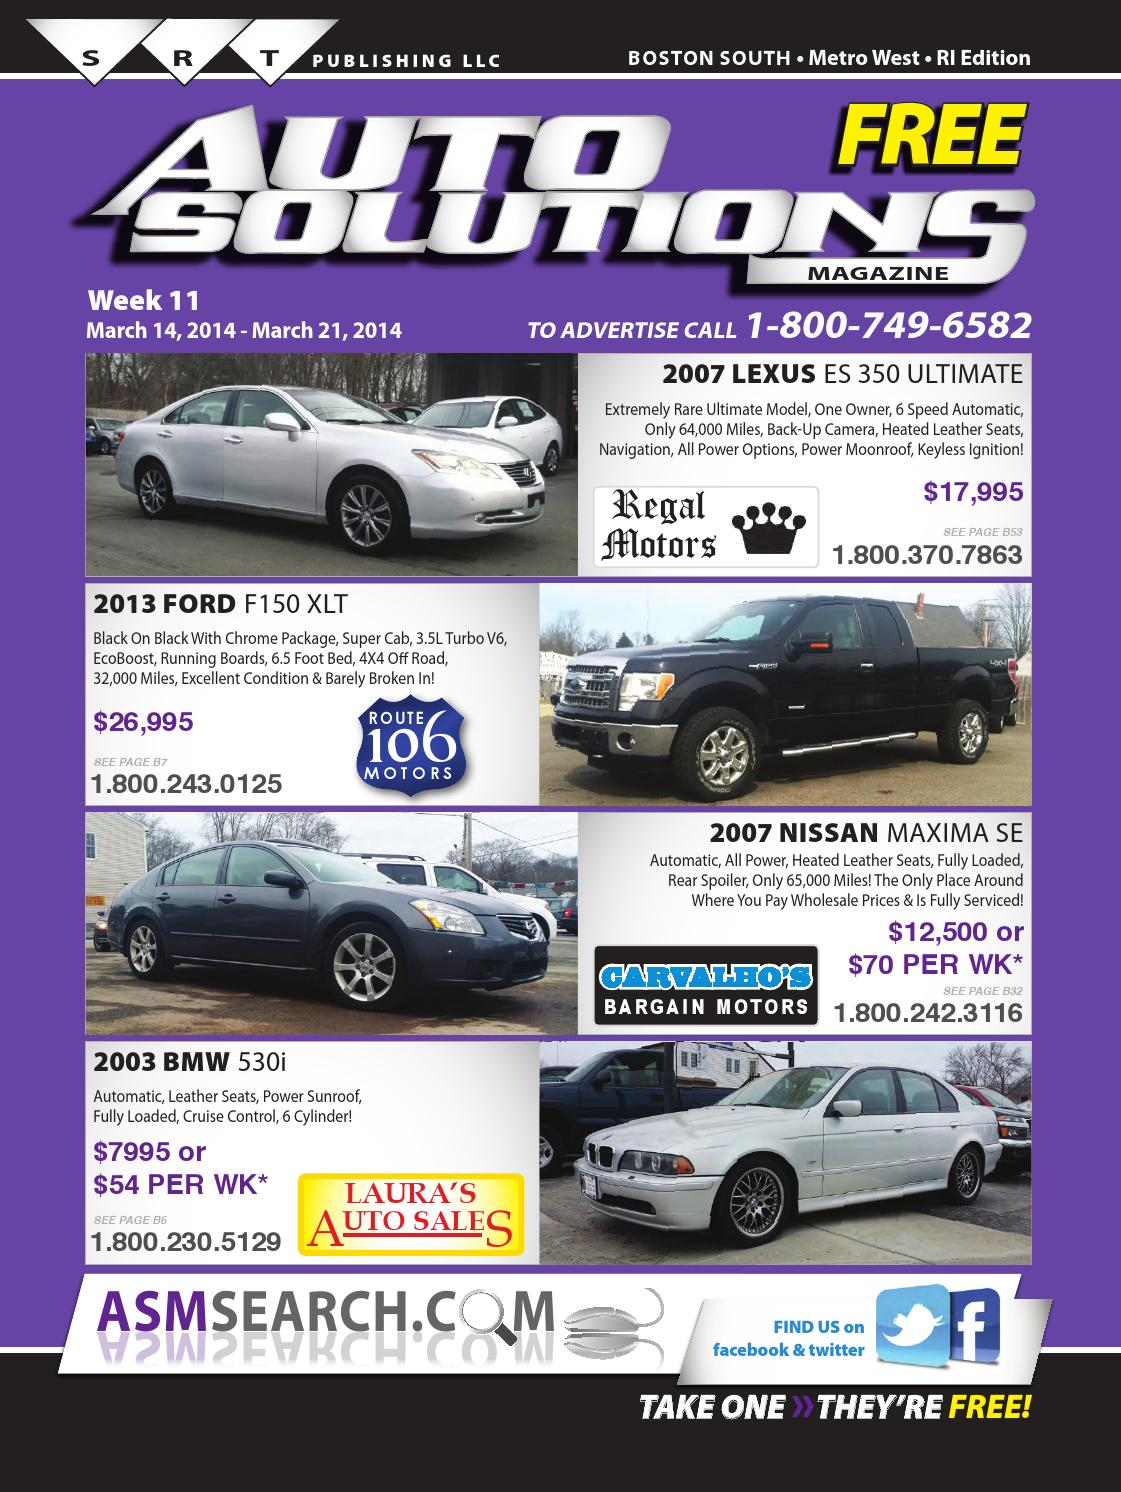 Week 11 south book by auto solutions magazine issuu for Carvalho s bargain motors